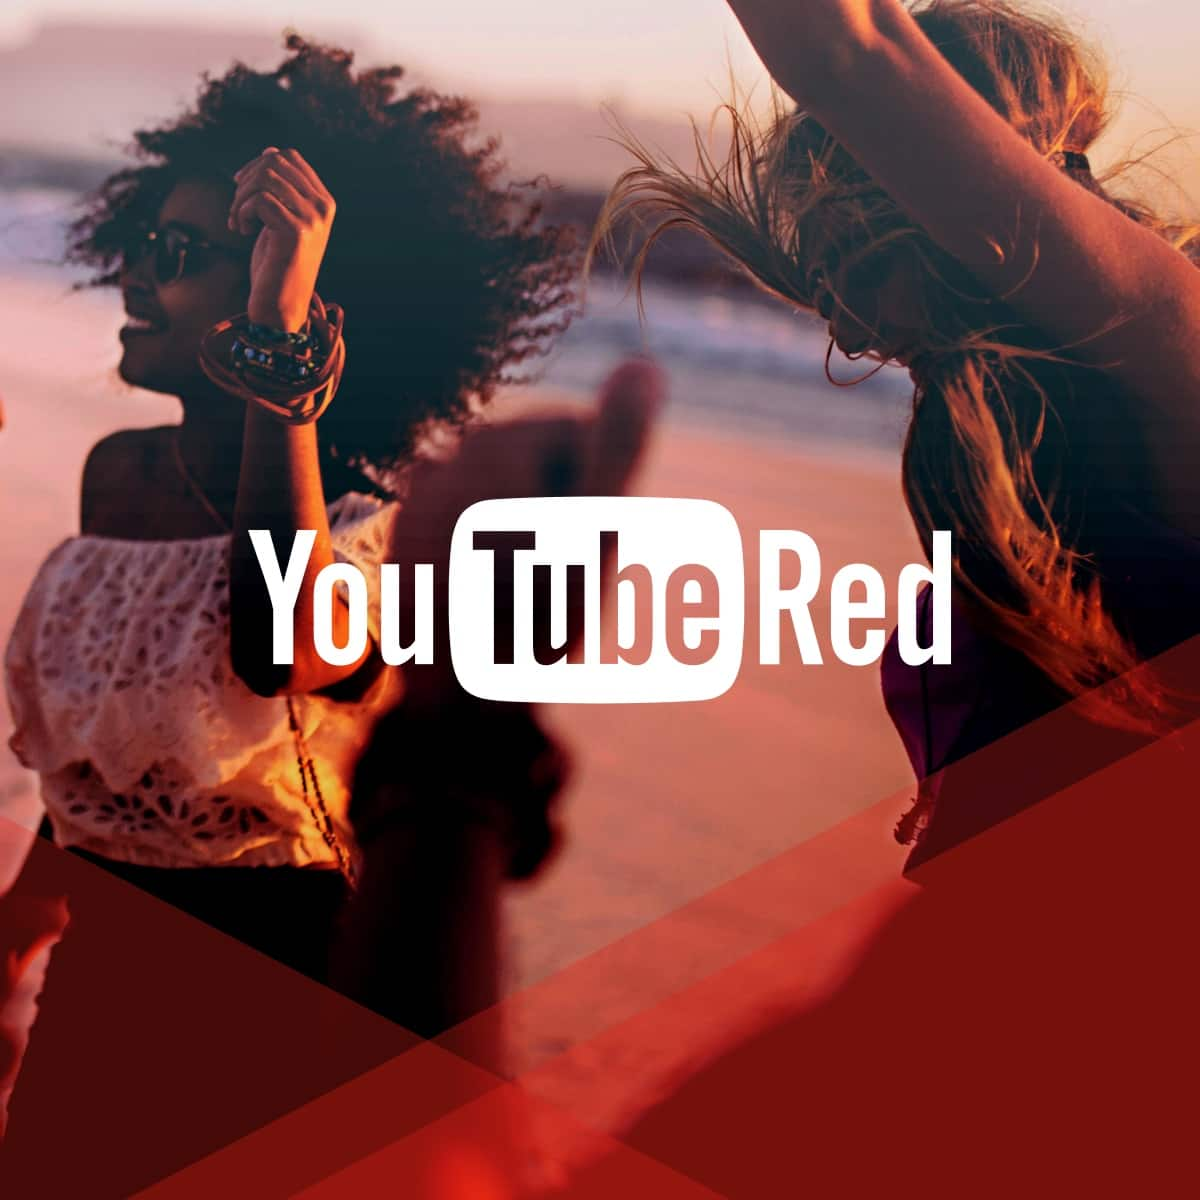 YouTube Red and Google Play Music account FREE 3 month trial for new subscribers. Expires July 4